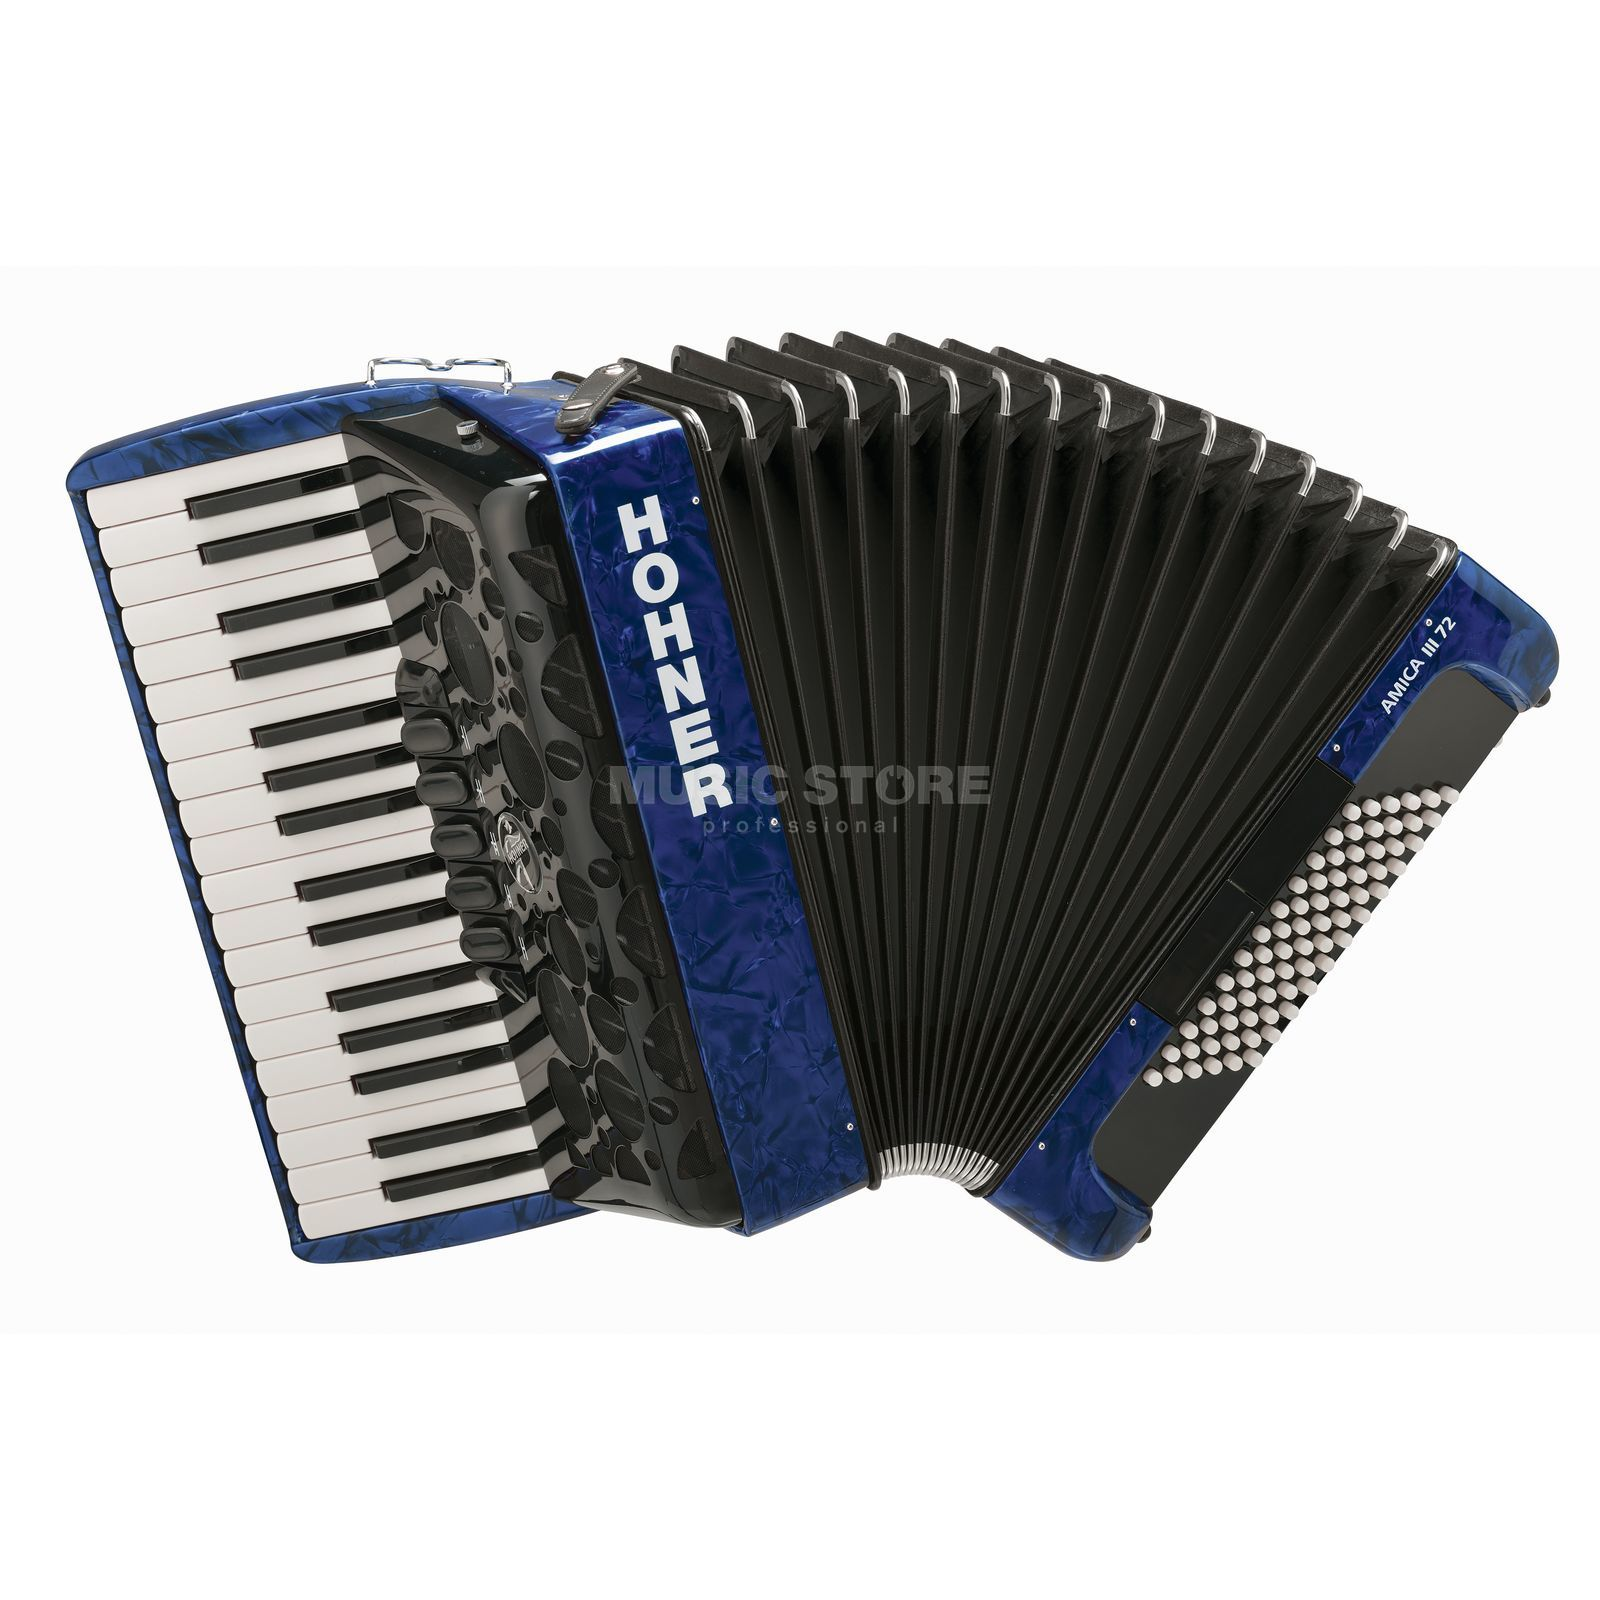 Hohner Accordion Piano Style Amica 72 basses, III choirs, blue Produktbillede